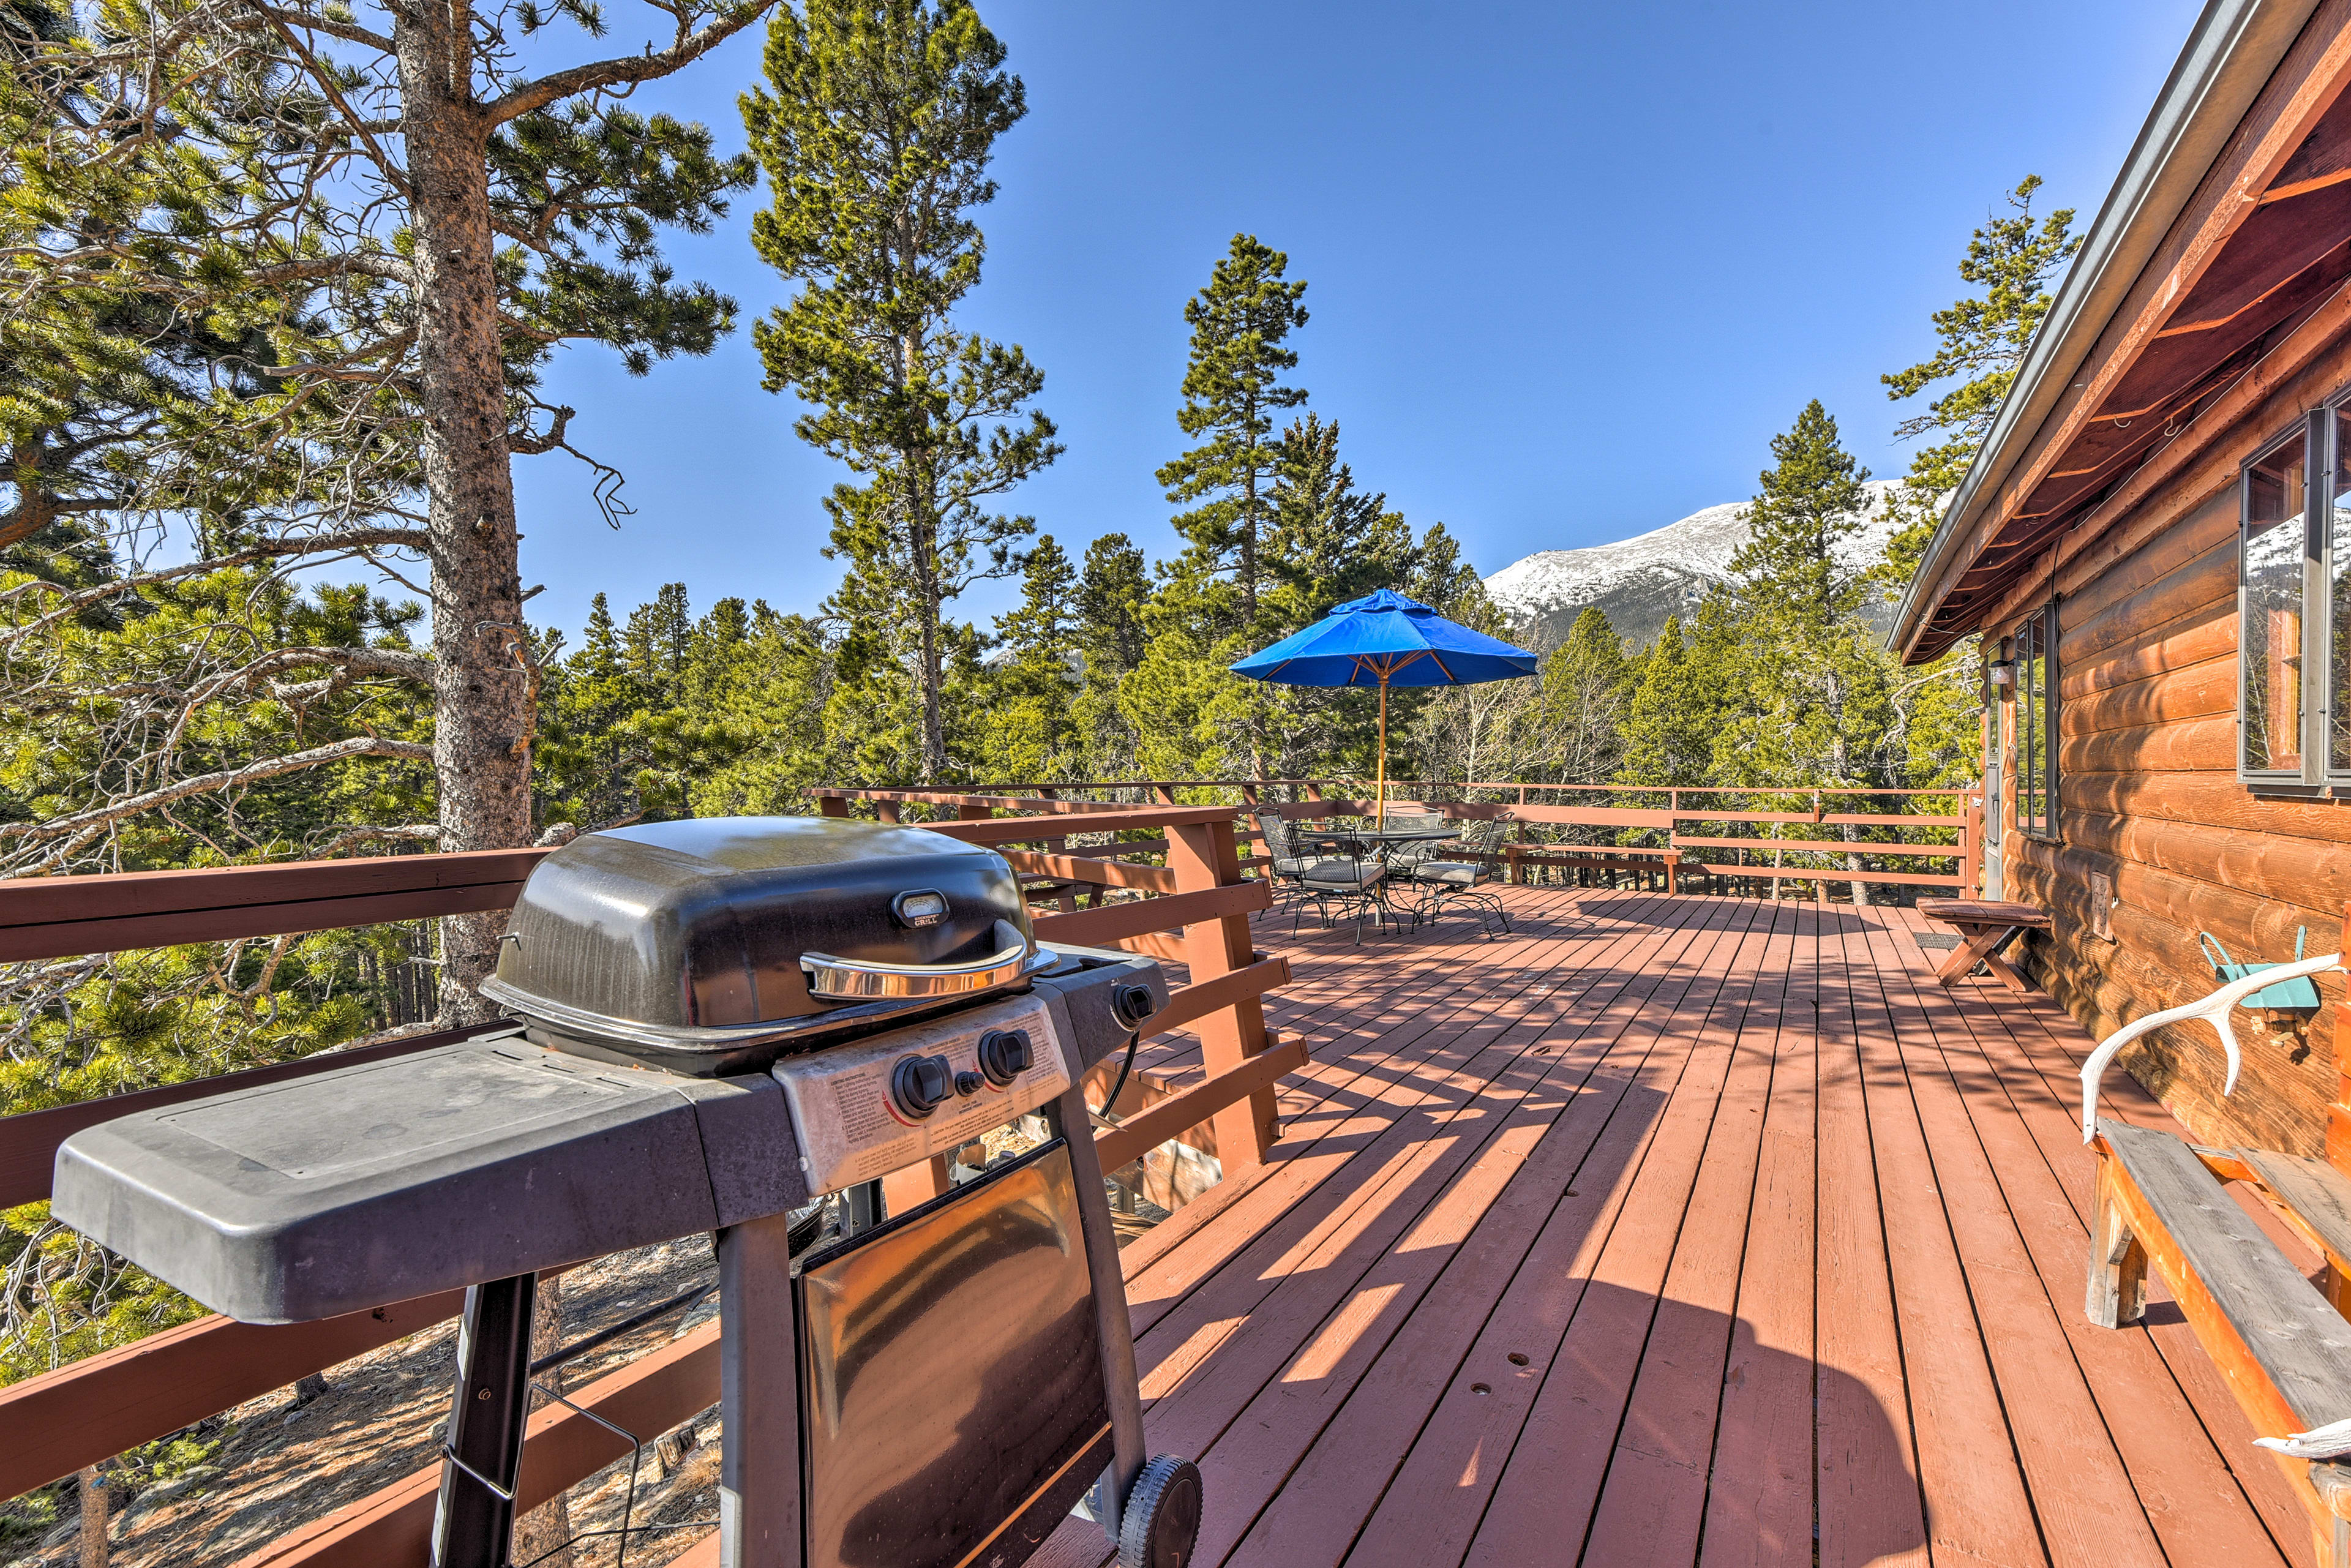 Up to 8 guests can enjoy barbecues outside during their Rocky Mountain getaway!